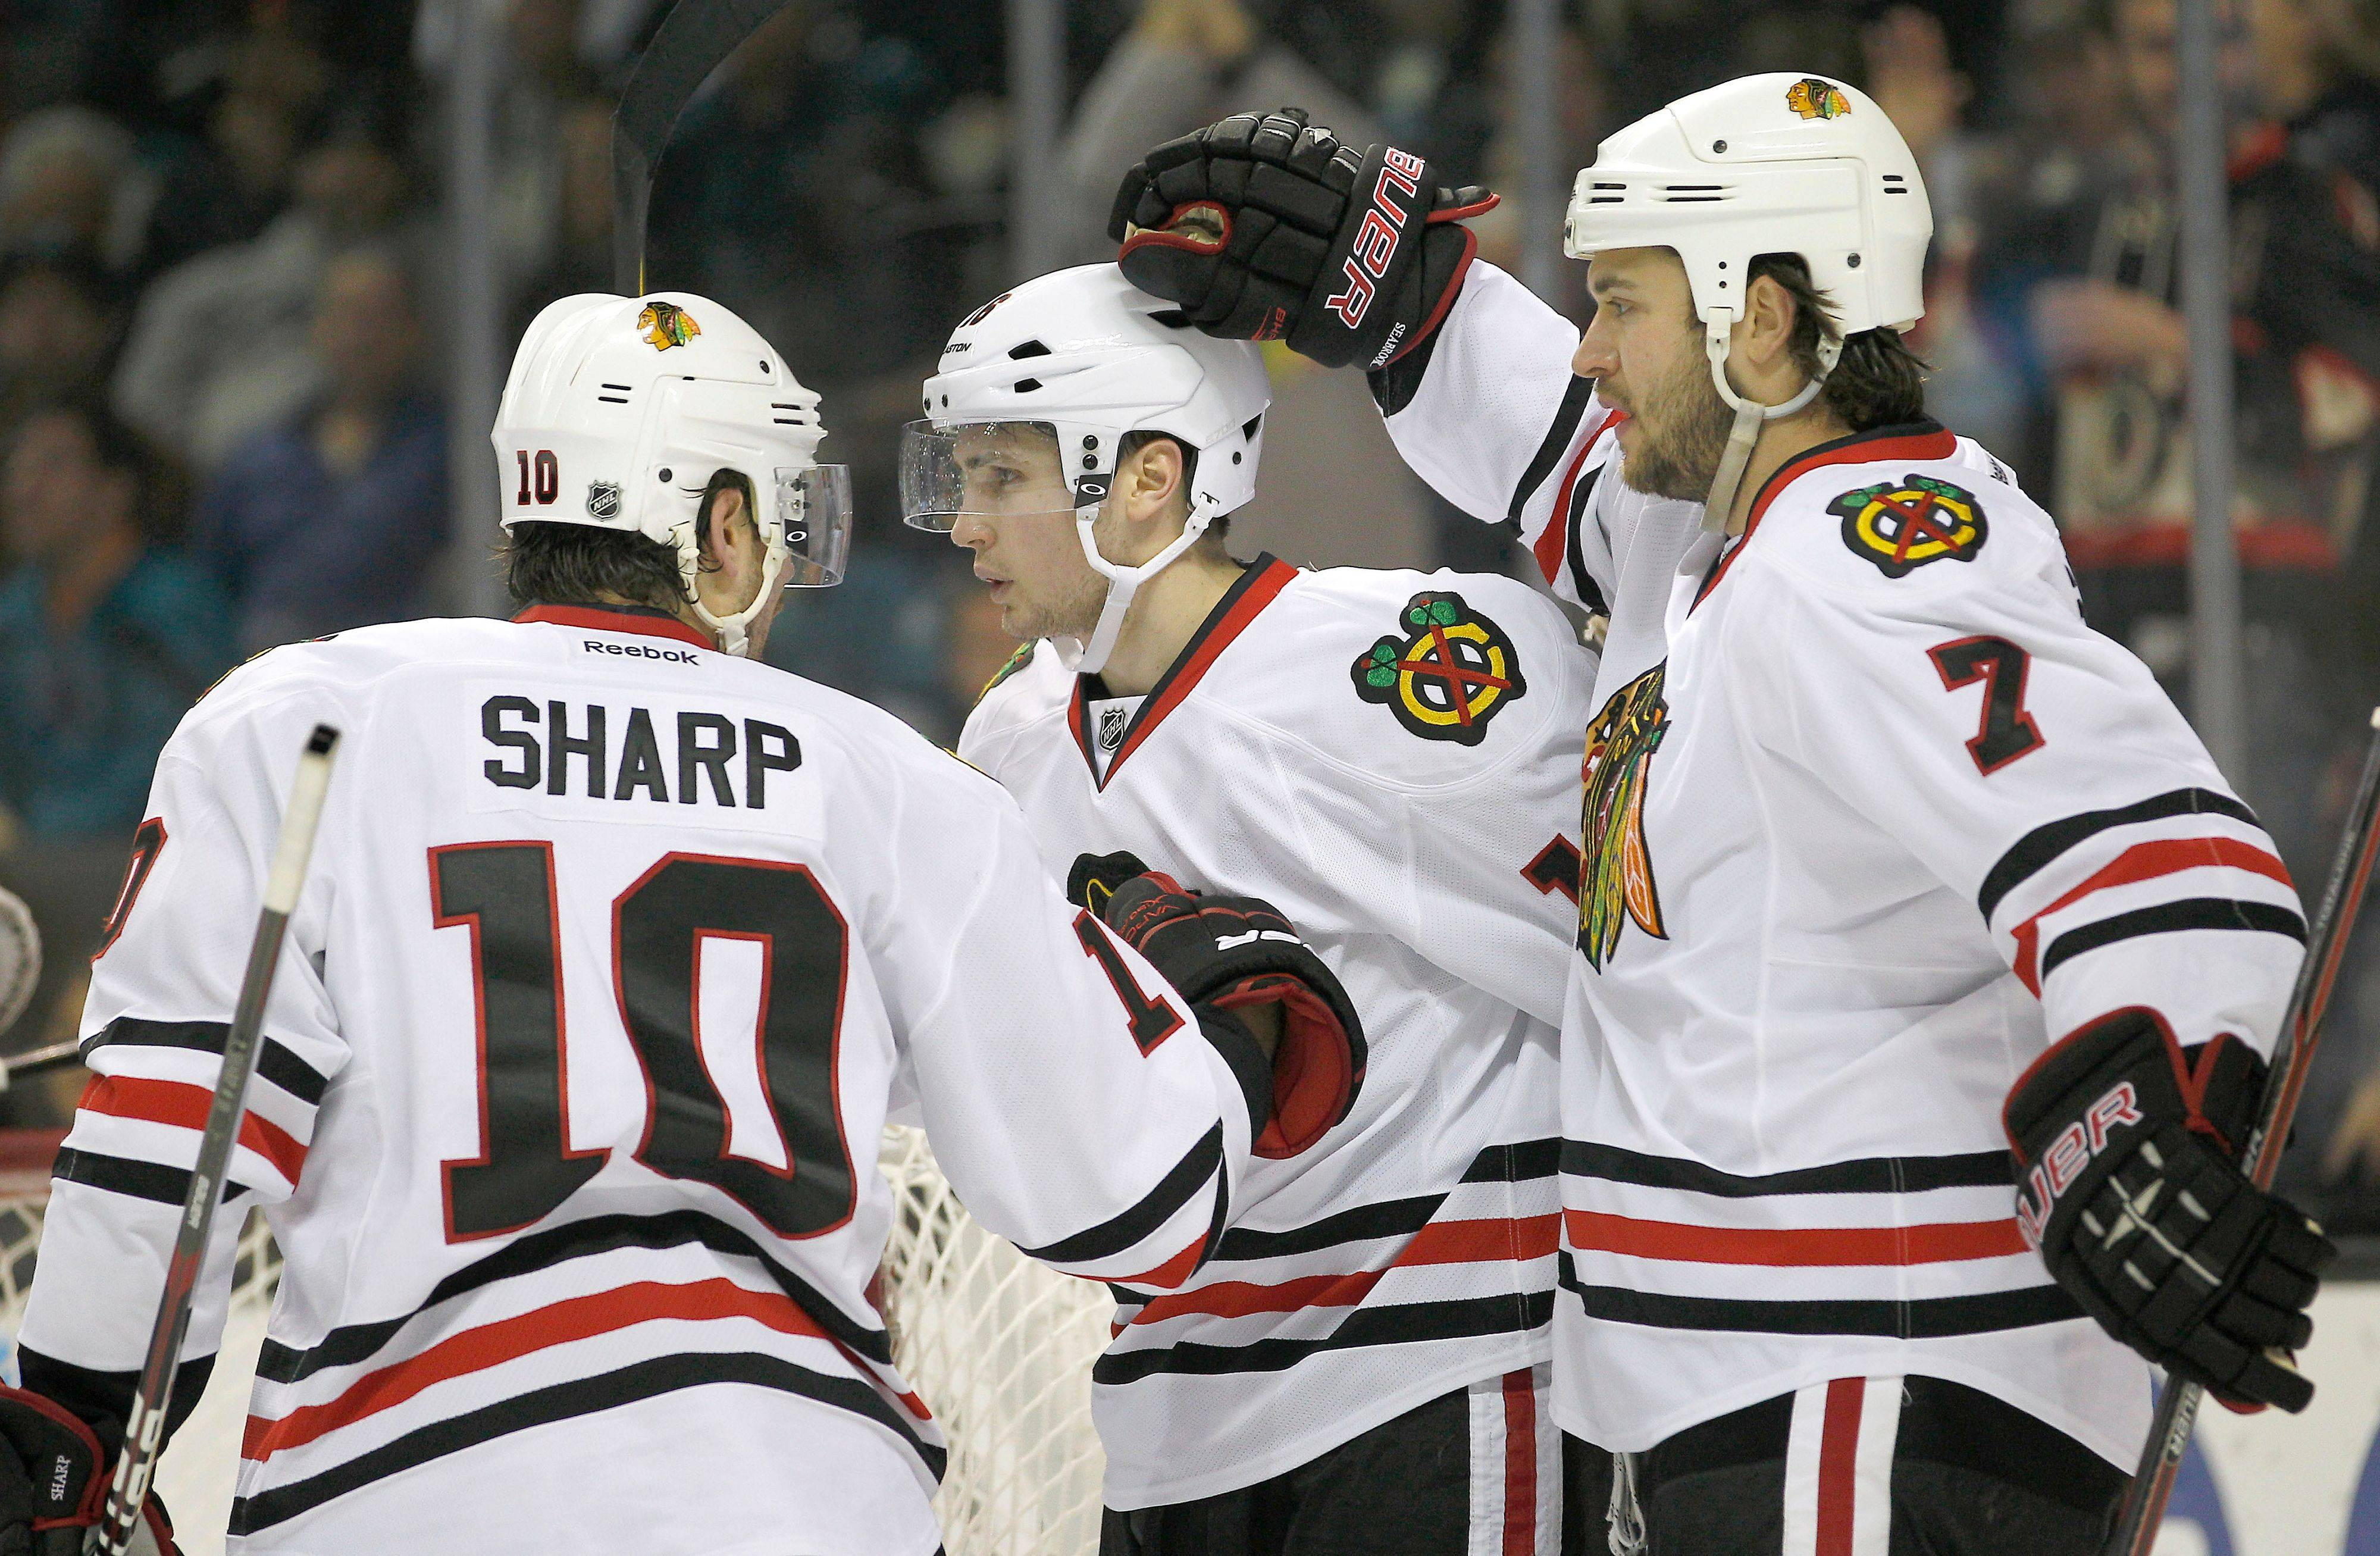 Patrick Sharp and Brent Seabrook (7) are two of the three Blackhawks who were with the team back when times were really bleak and the Hawks had trouble winning.